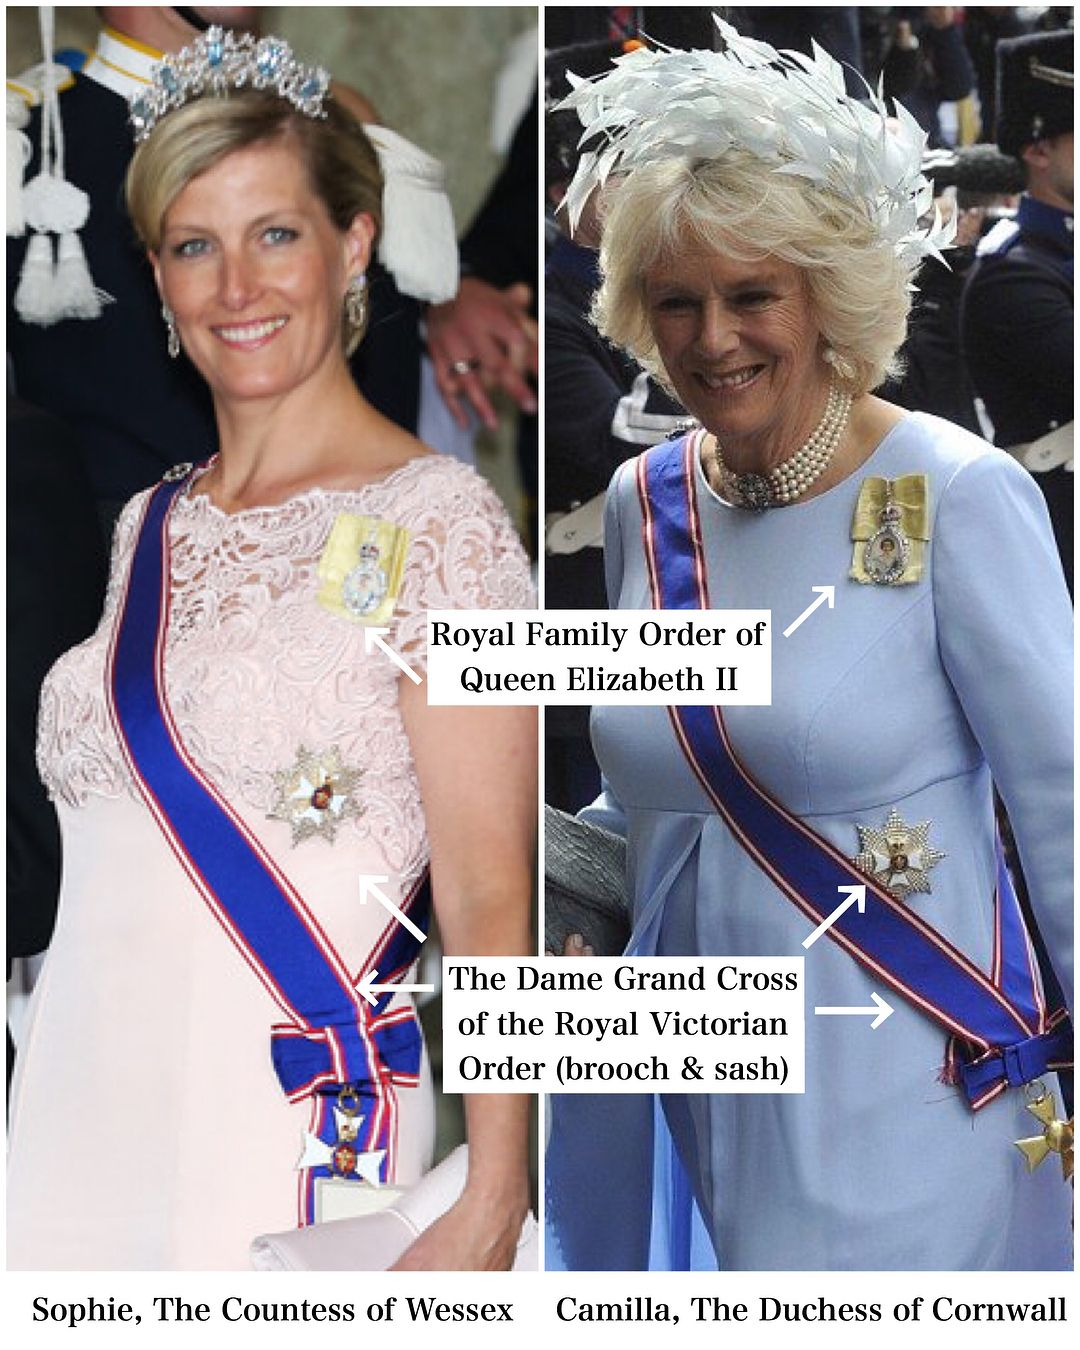 The Royal Family Order is an honour granted personally by